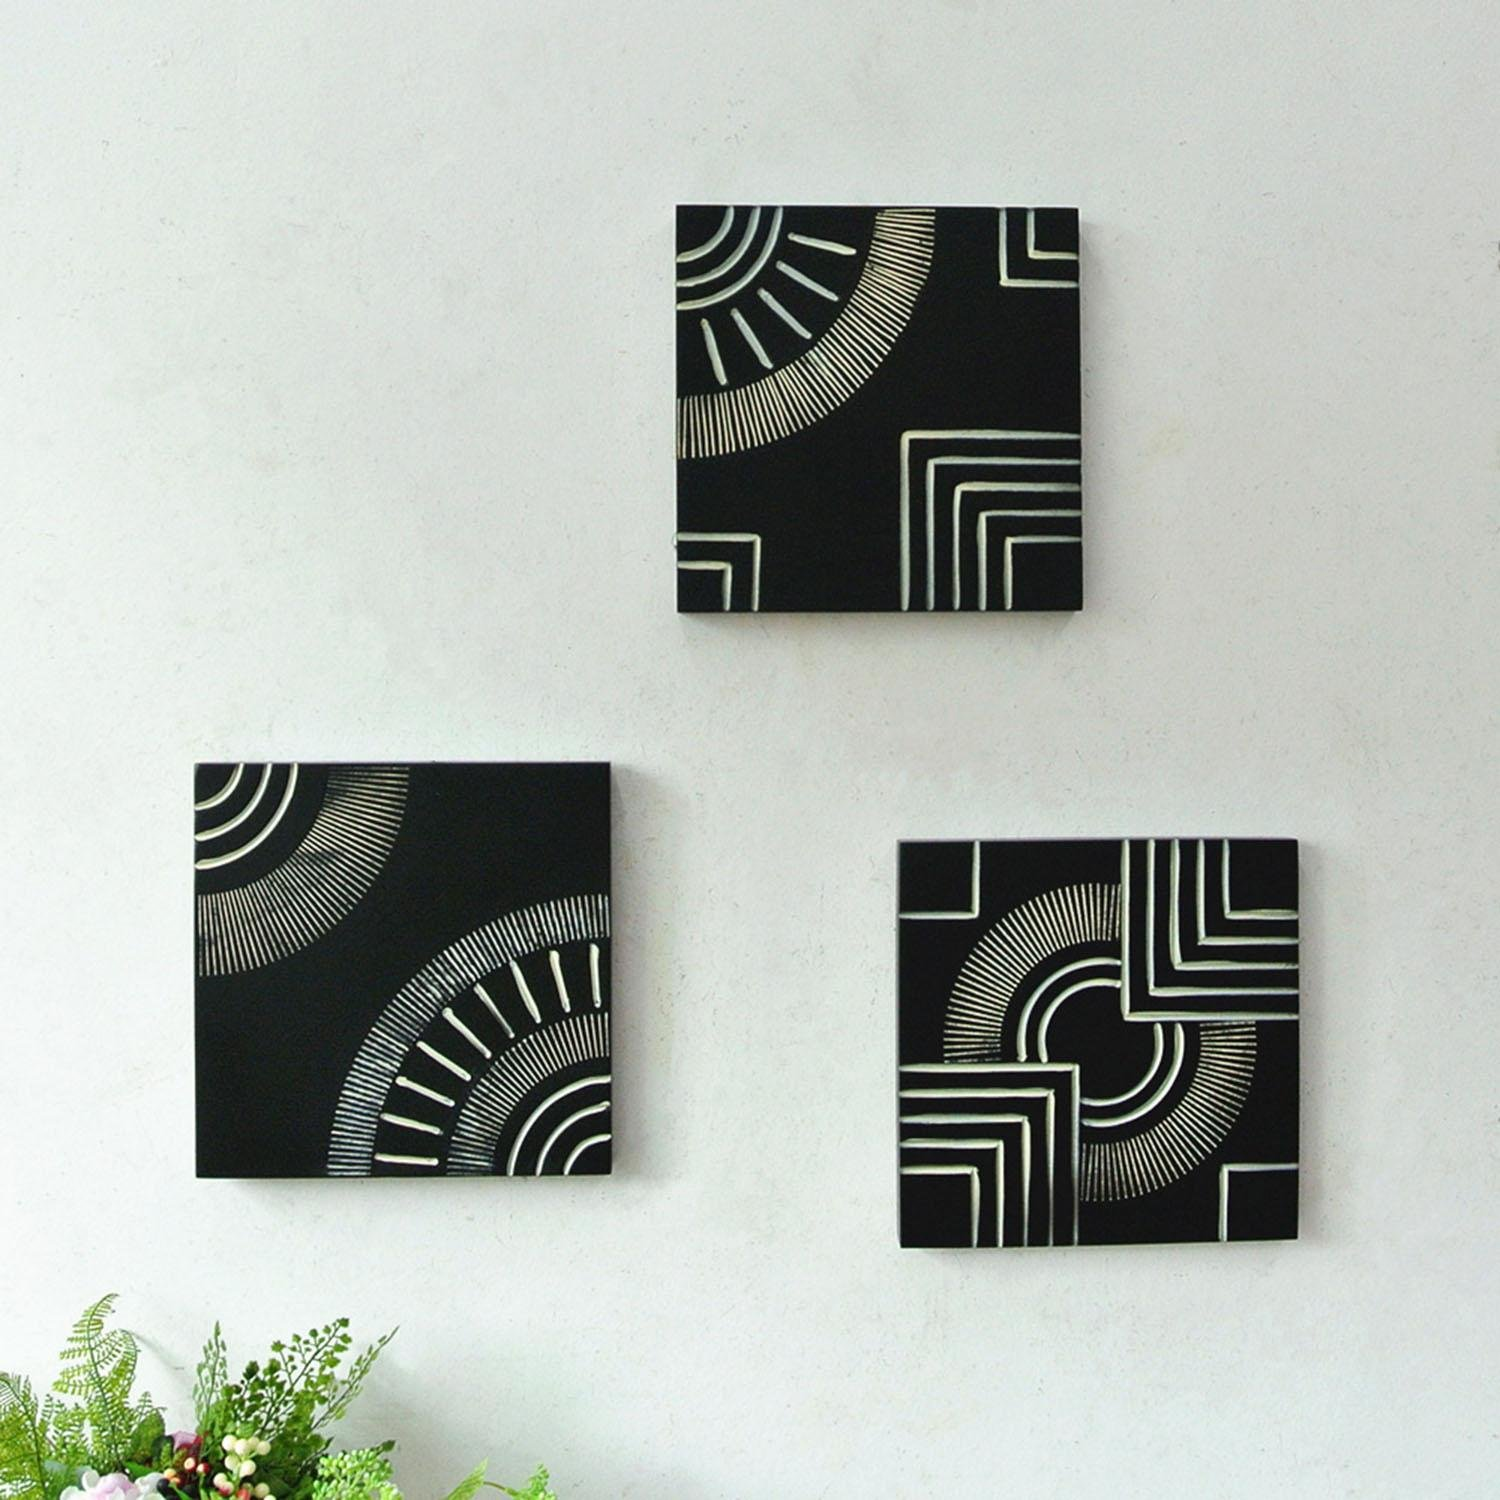 OOFYHOME Handicrafts, wall hanging creative home wall decoration, soft ornaments iron crafts